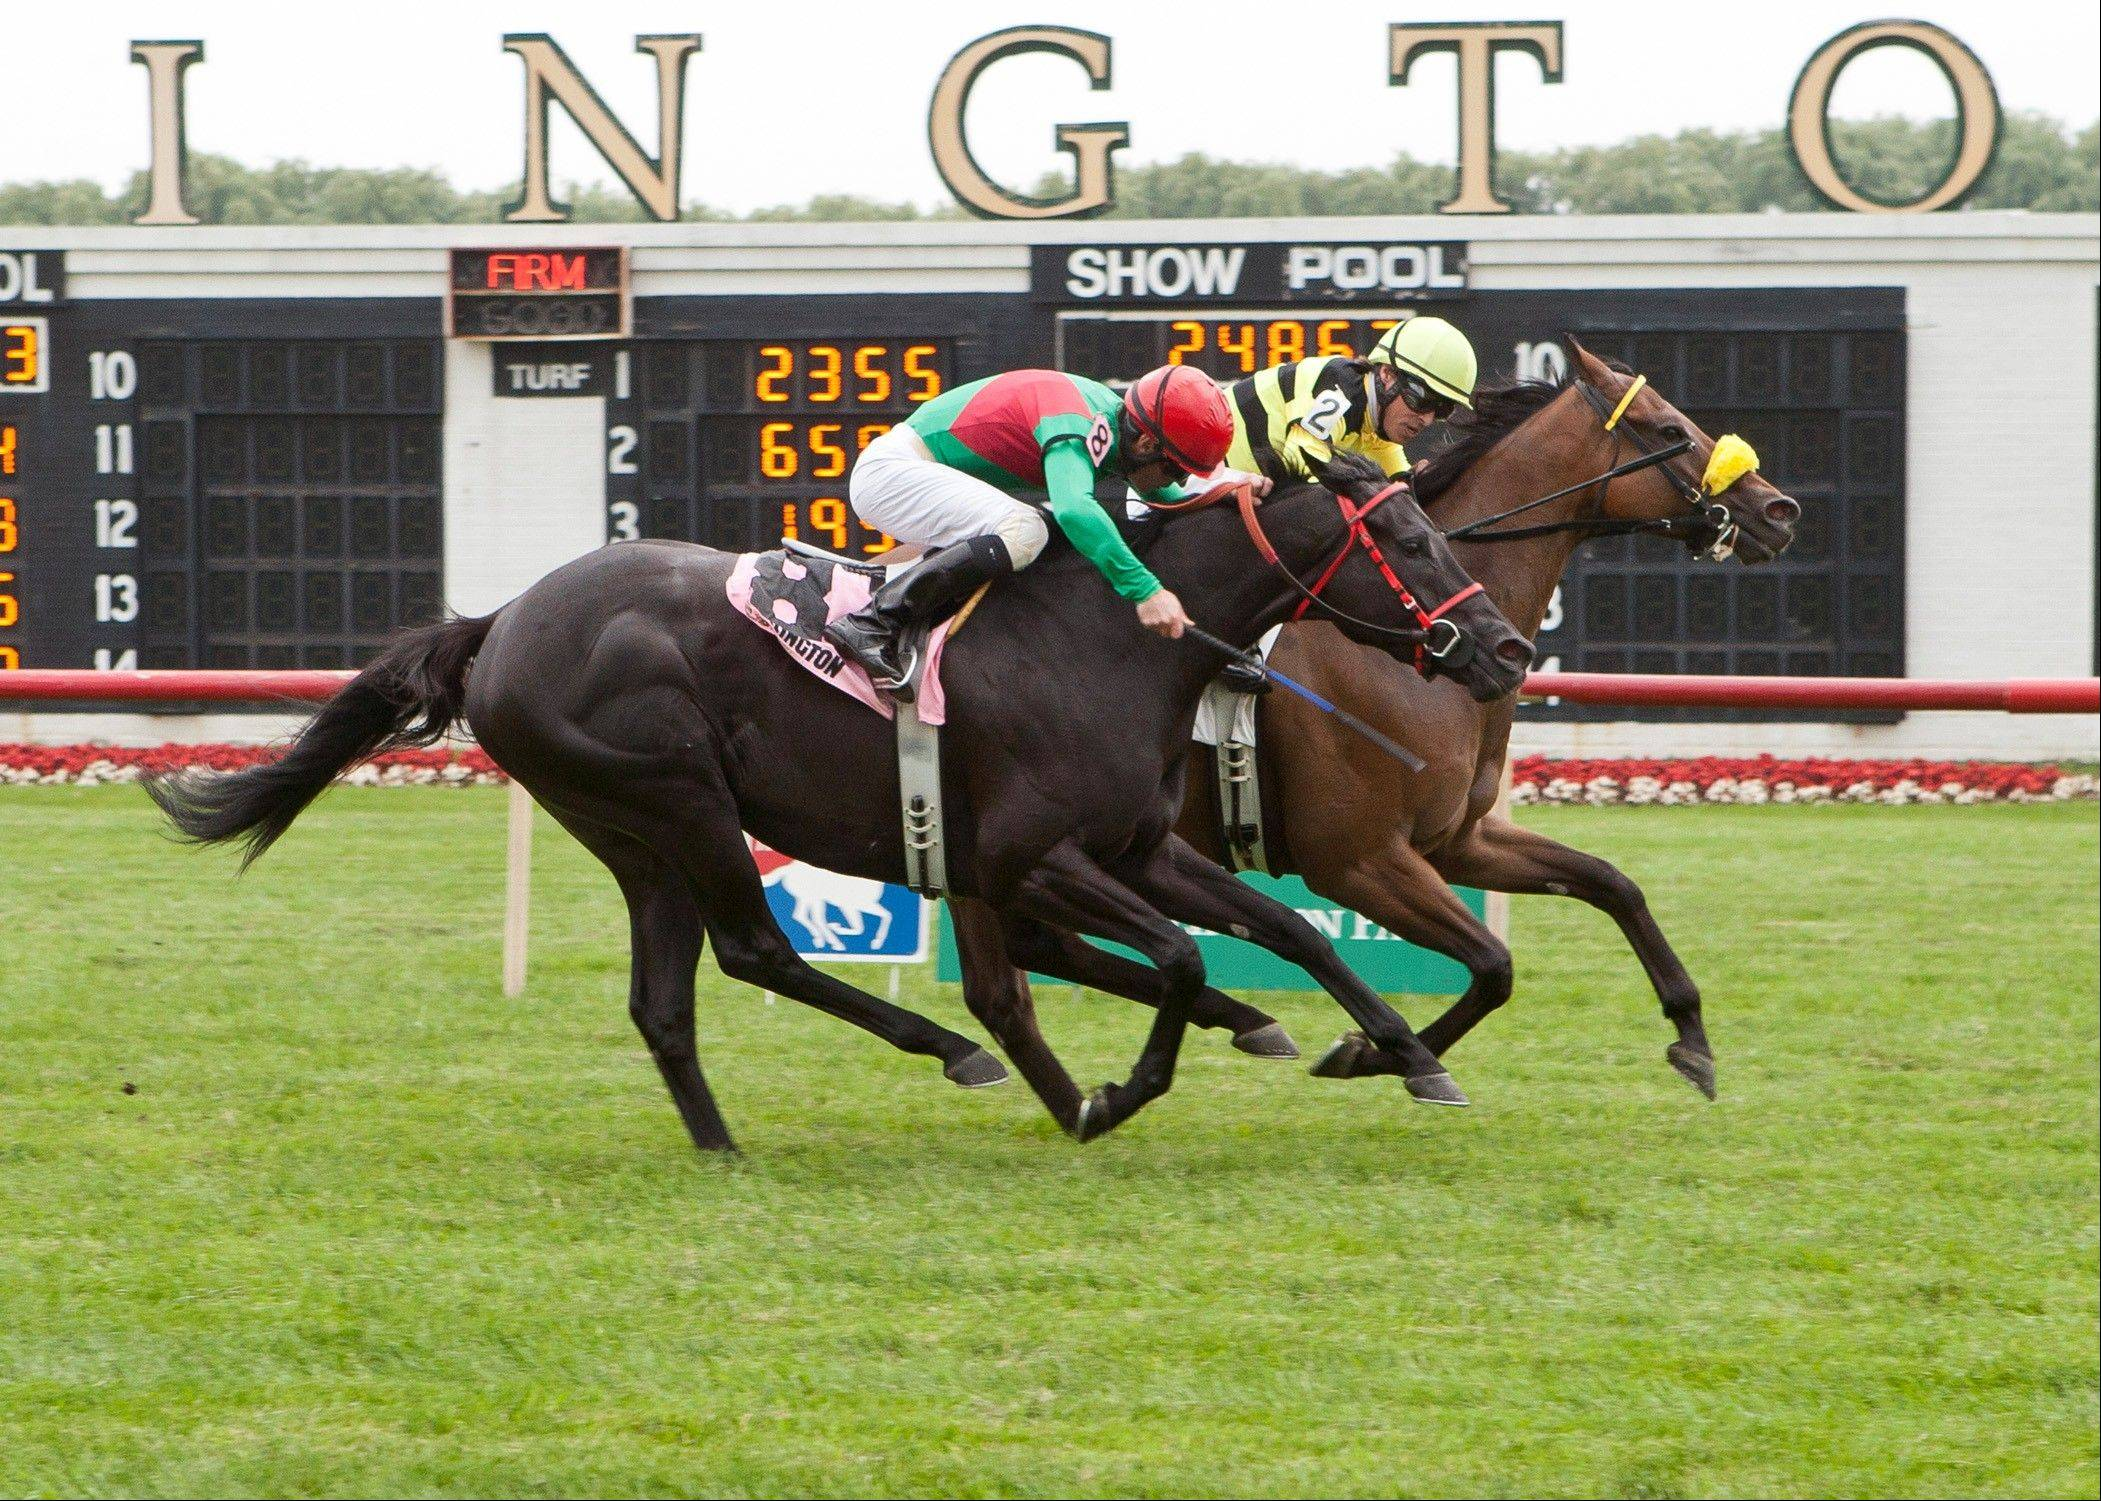 With jockey E.T. Baird aboard, Saint Leon wins Saturday's Arlington Sprint at Arlington Park.